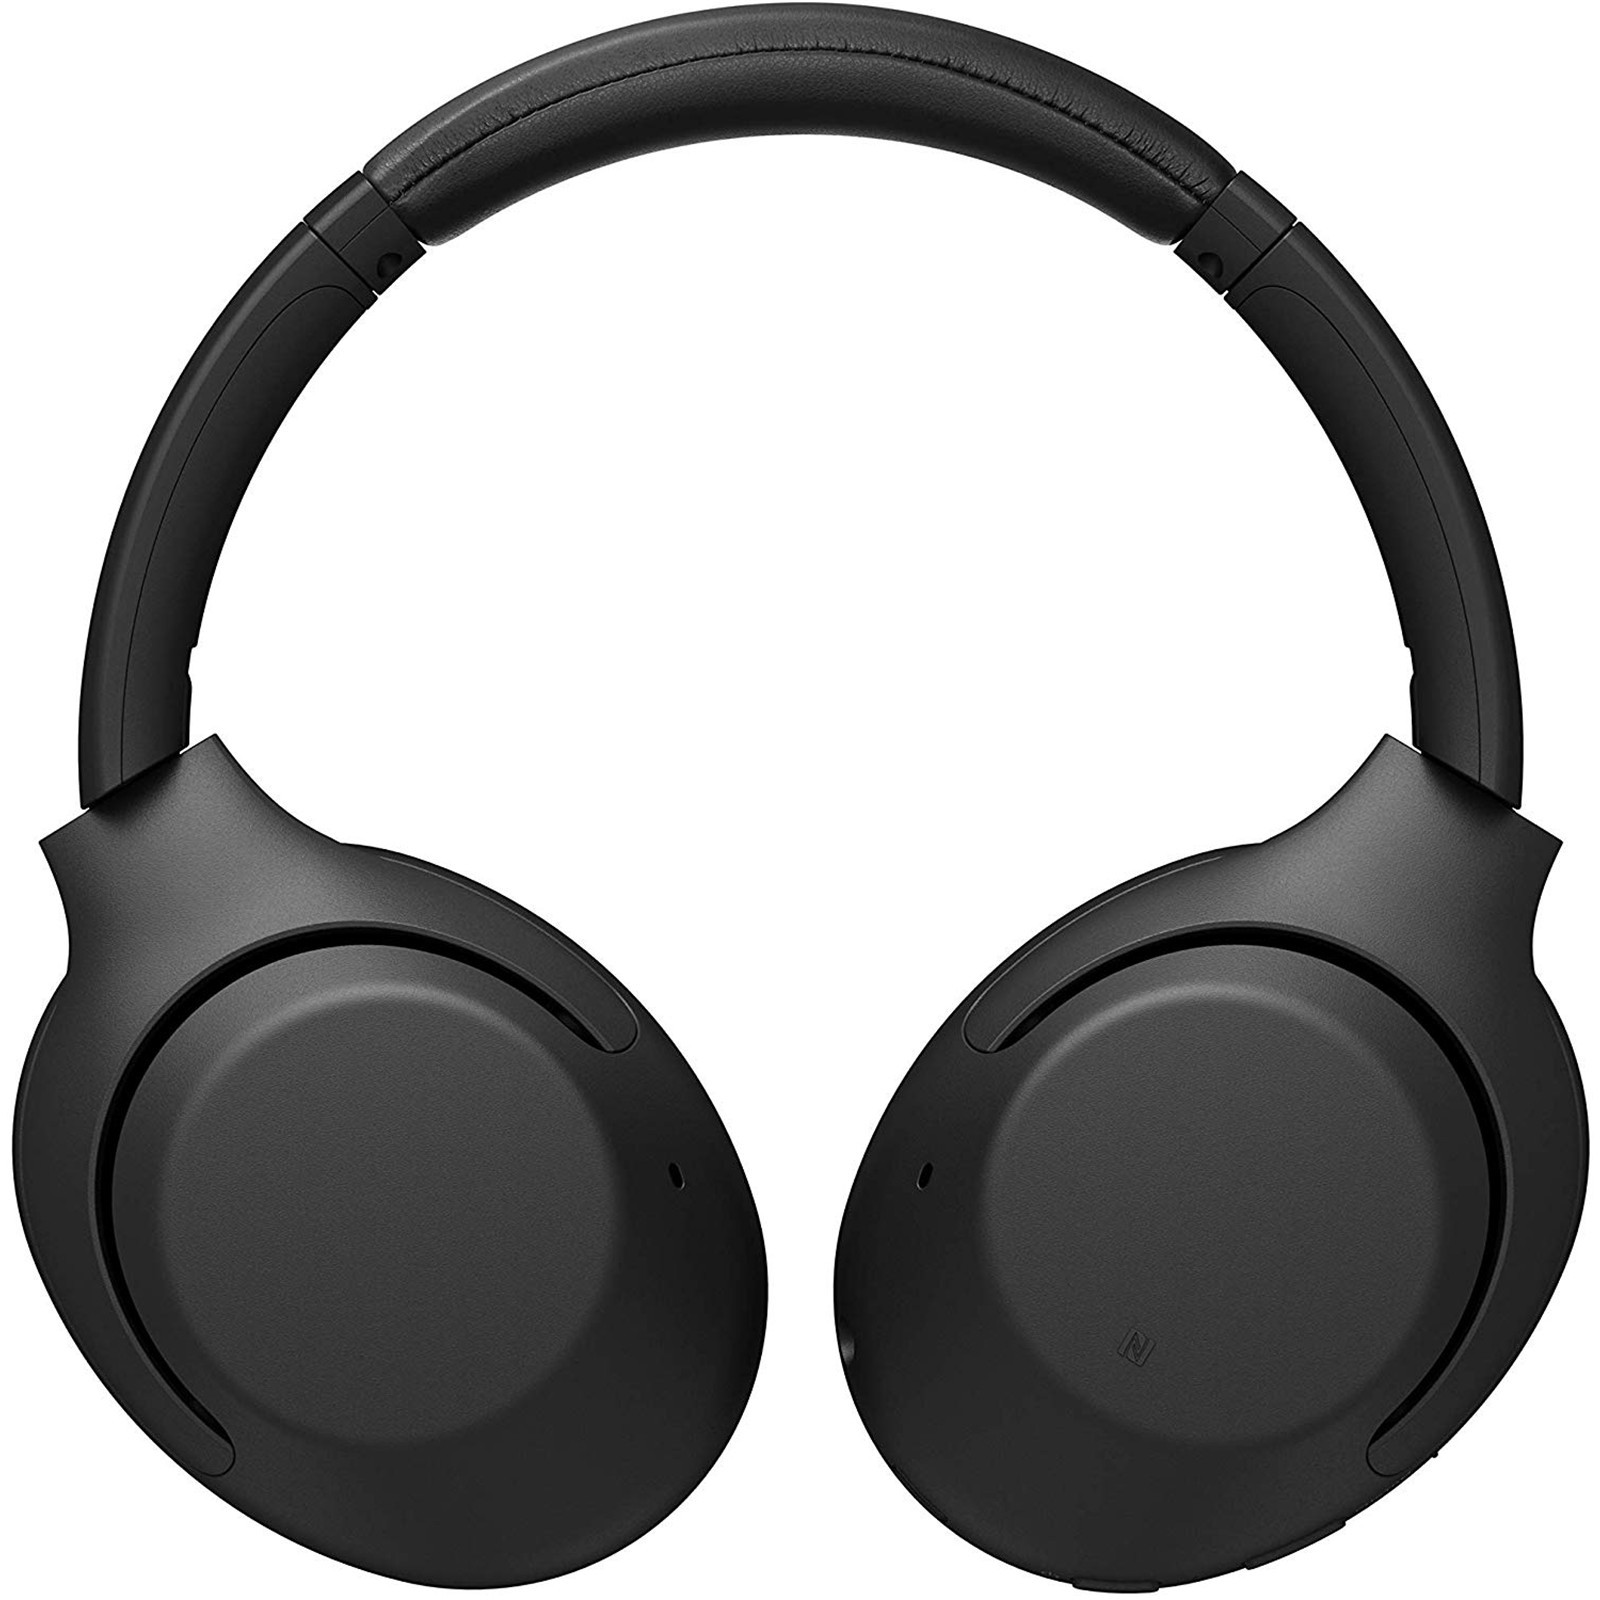 Sony Wh-XB900N Extra Bass Wireless Headphone (Noise Cancelling) - Black image